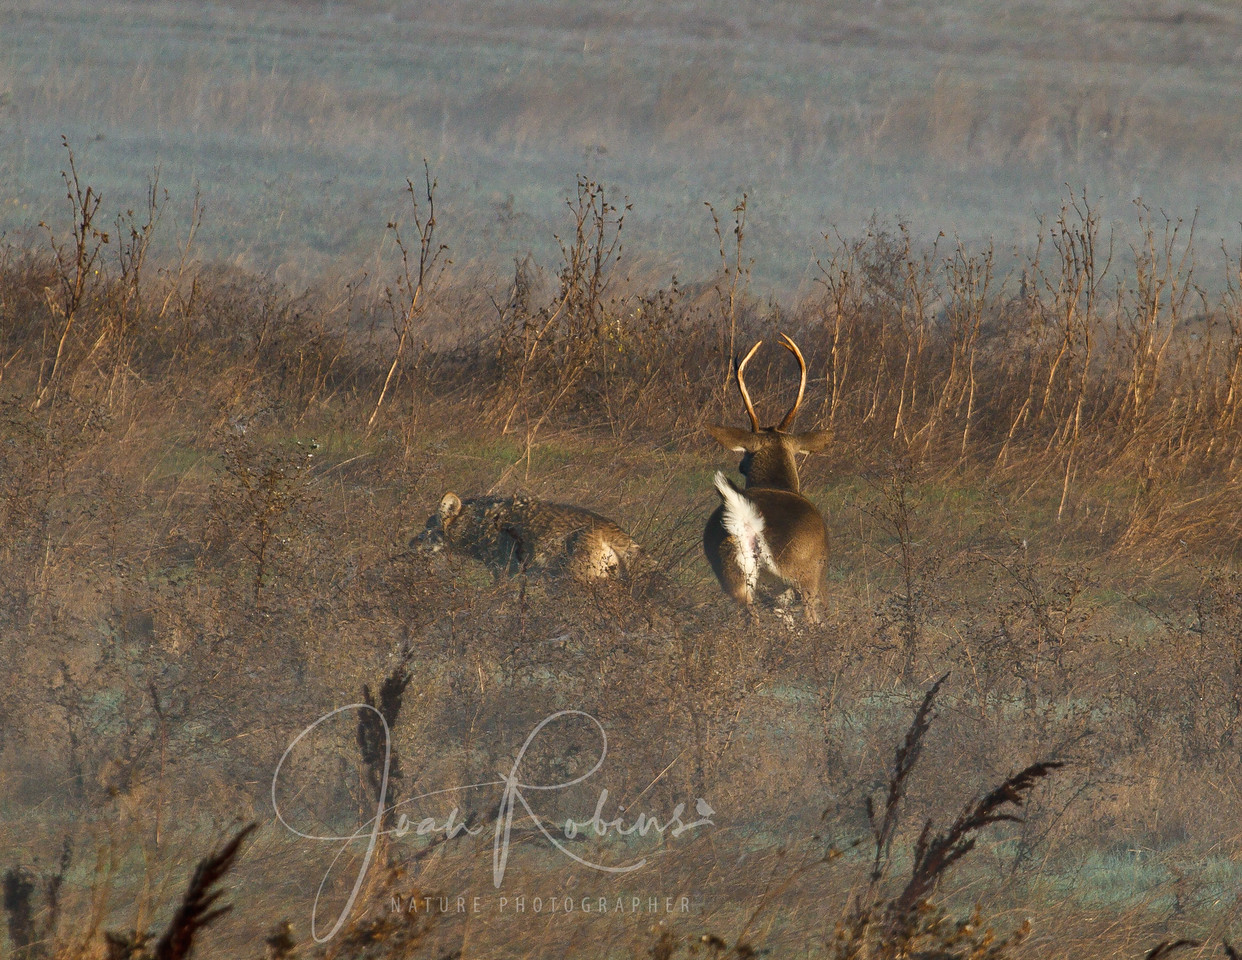 Tables turned - Stag chasing Coyote, Las Gallinas ponds, San Rafael, California